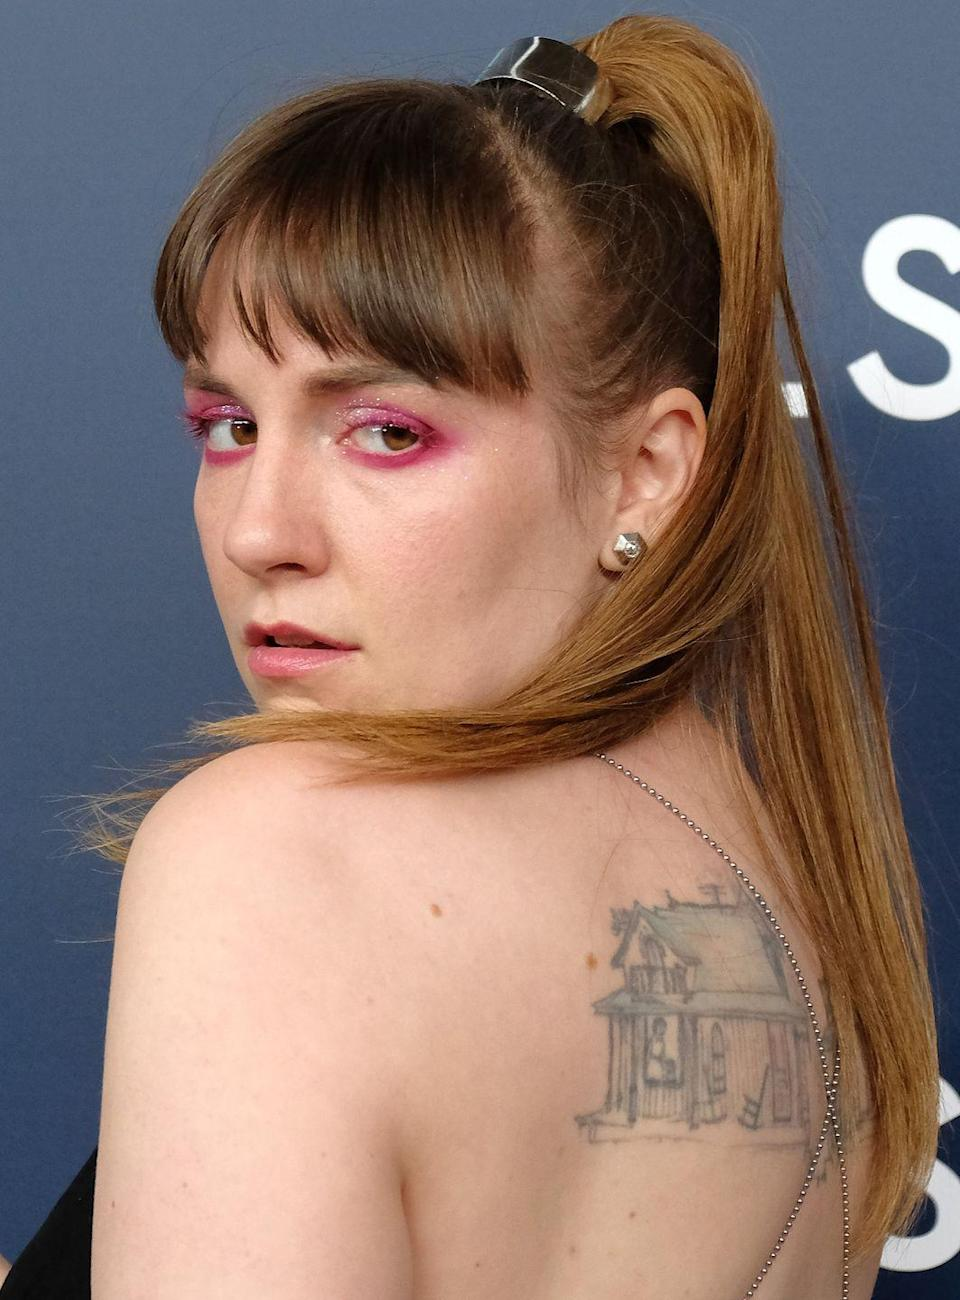 <p>Lena Dunham has been sporting a pixie crop of sorts for the last year or so. So it was a surprise to everyone when she debuted long ombre locks on her Instagram. She seems to have foregone the ombre part now, but has kept the fringe. It's certainly an edgier look for the star. </p>